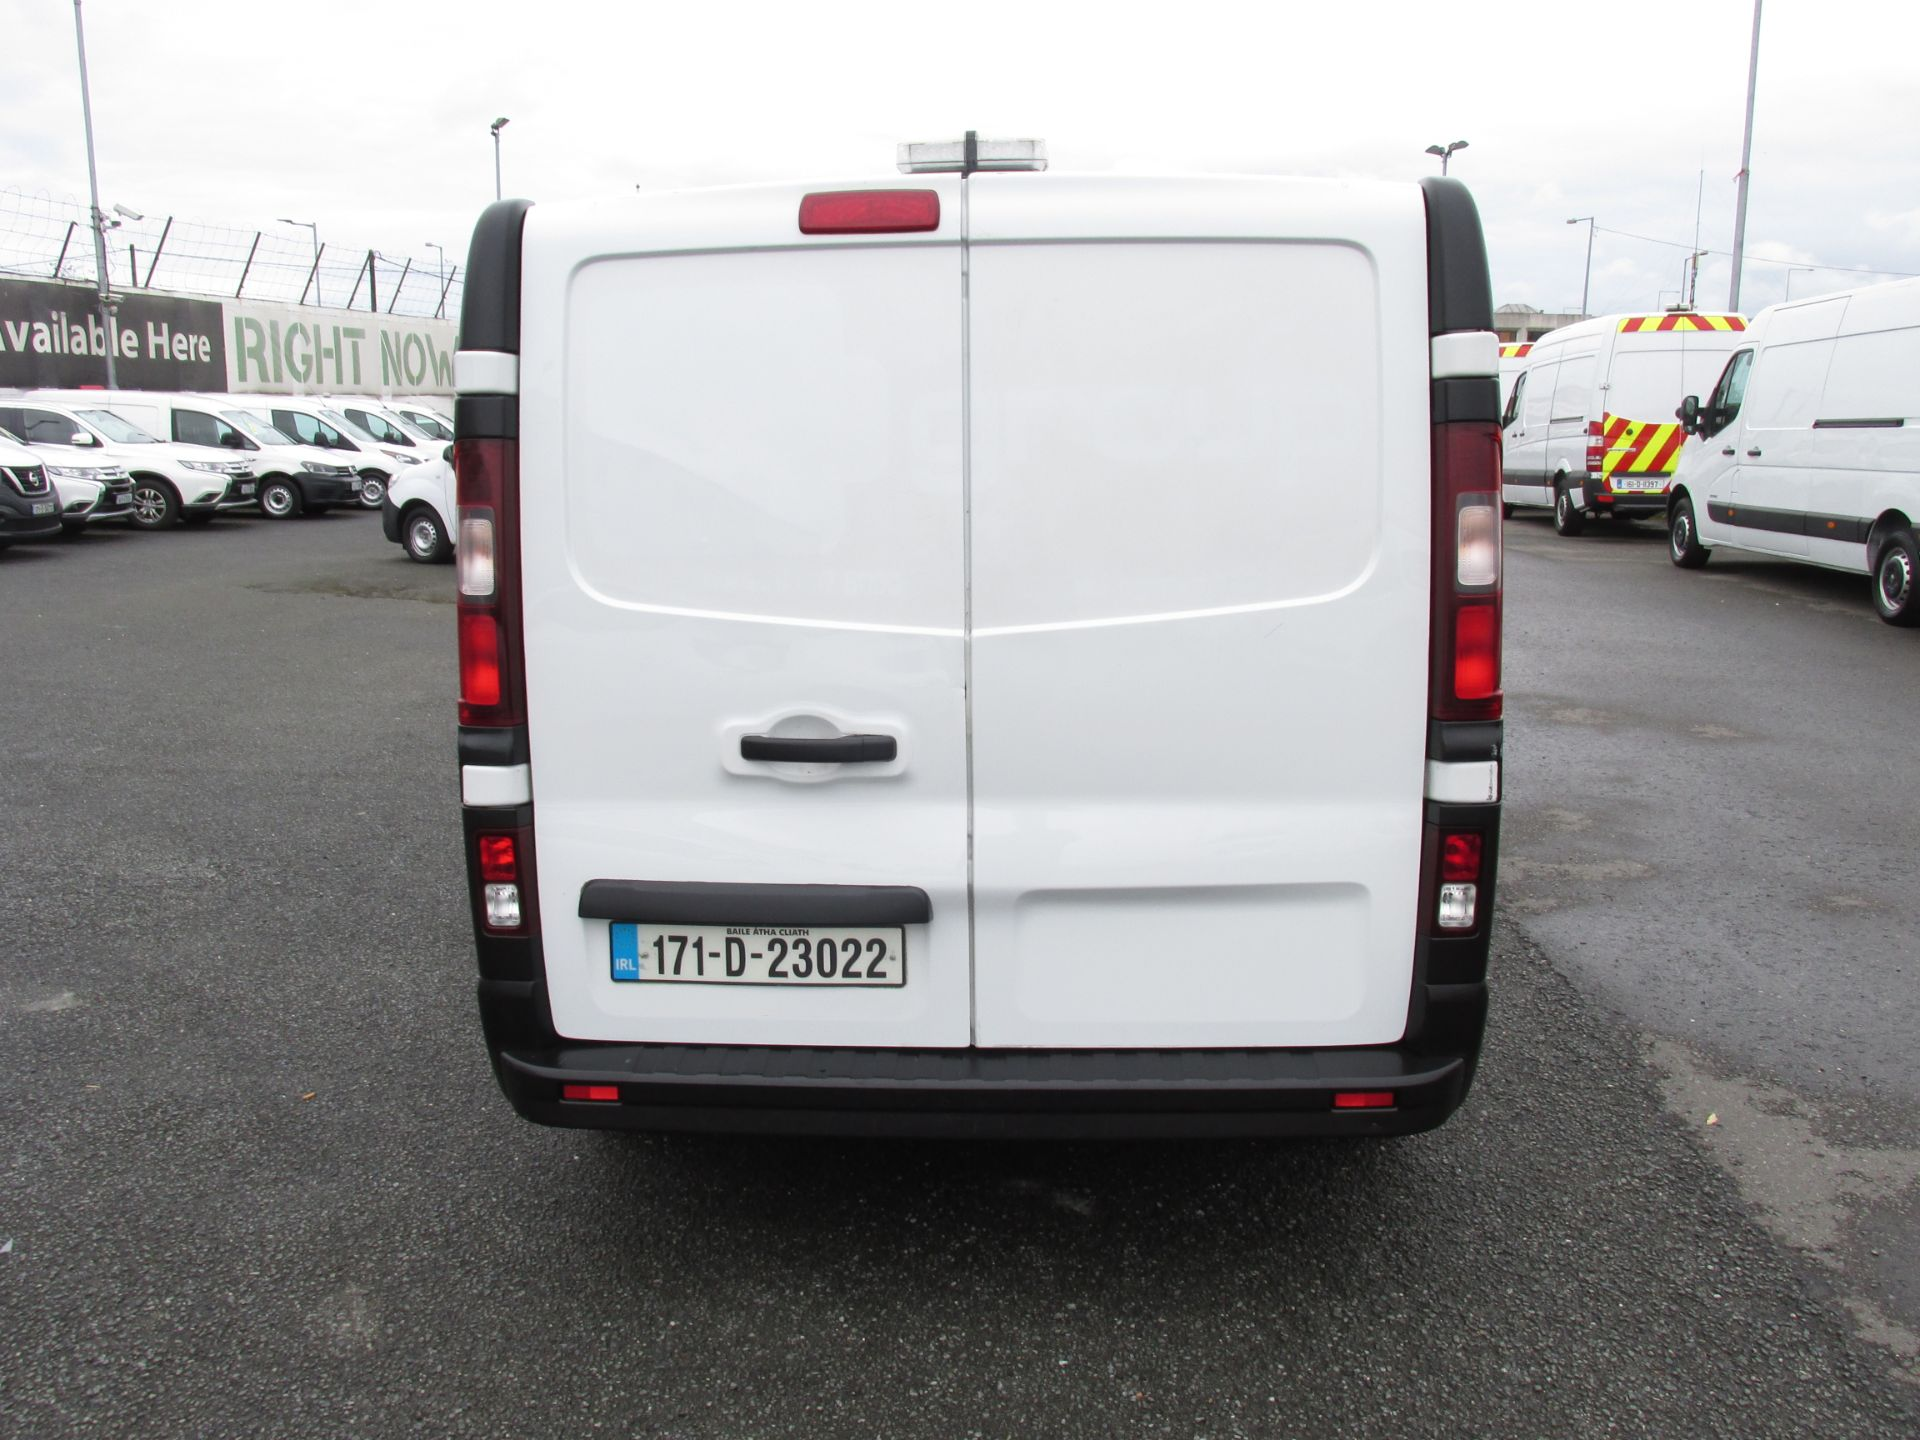 2017 Renault Trafic LL29 DCI 120 Business 3DR (171D23022) Image 6